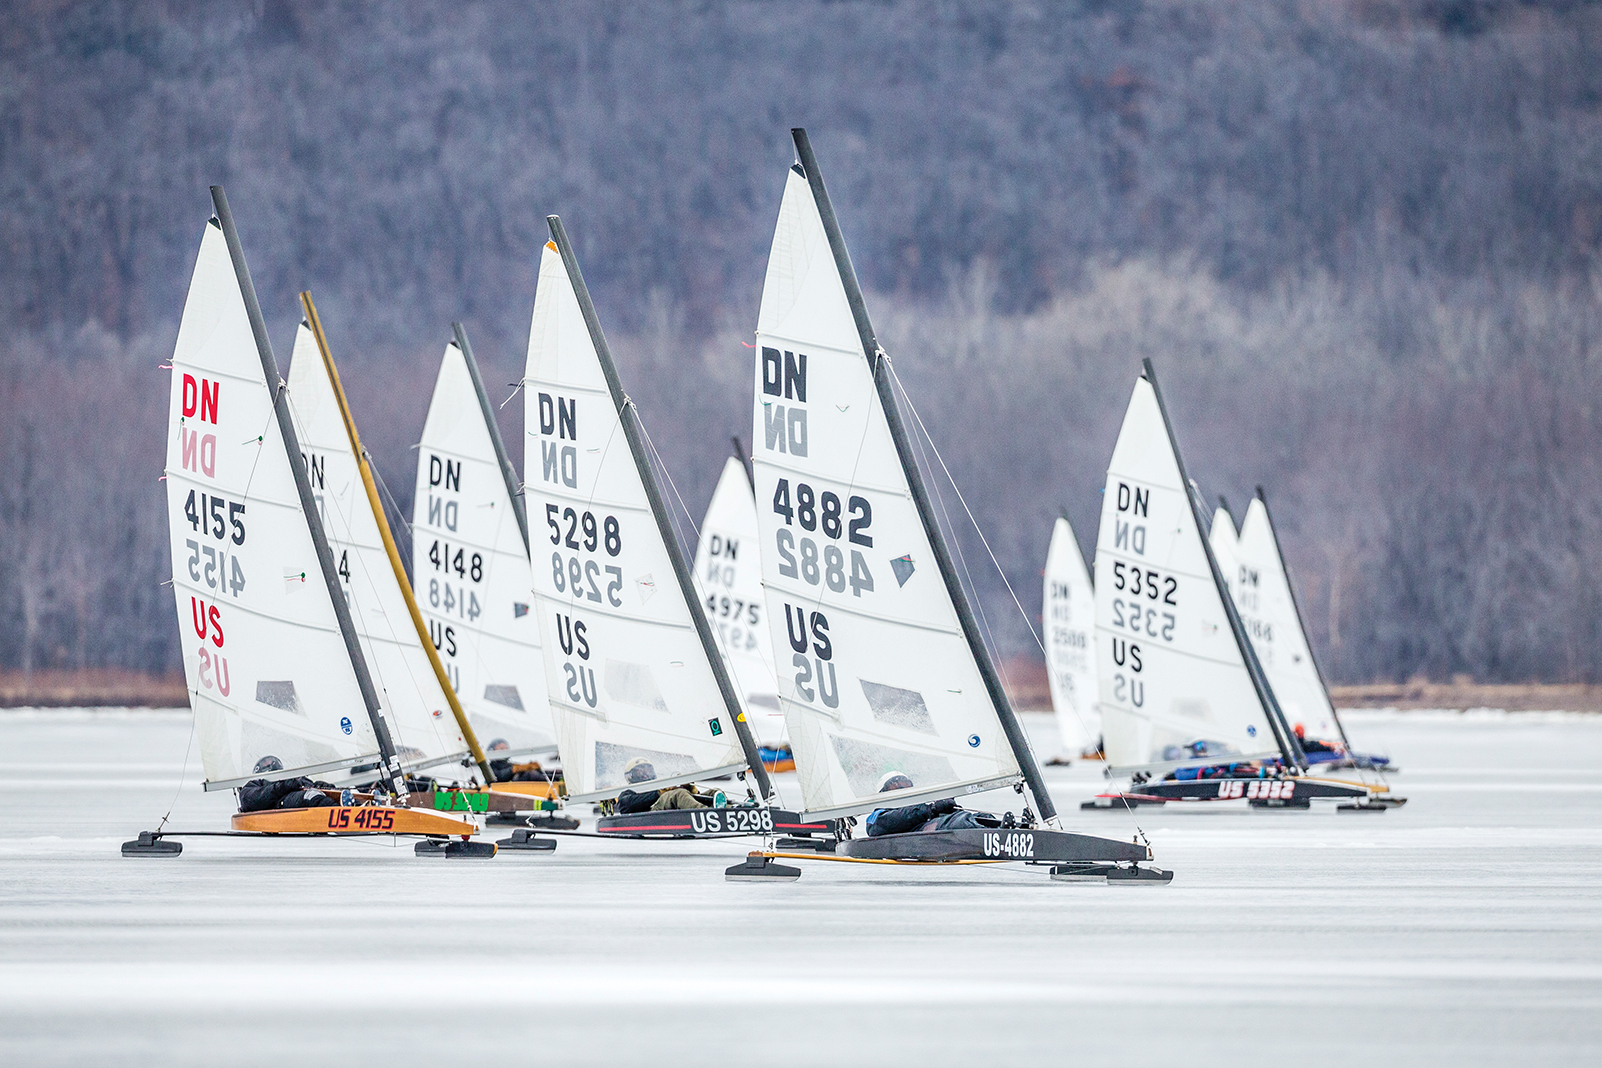 Cool runnings: Iceboats squaring off during a 2019 race on Lake Pepin